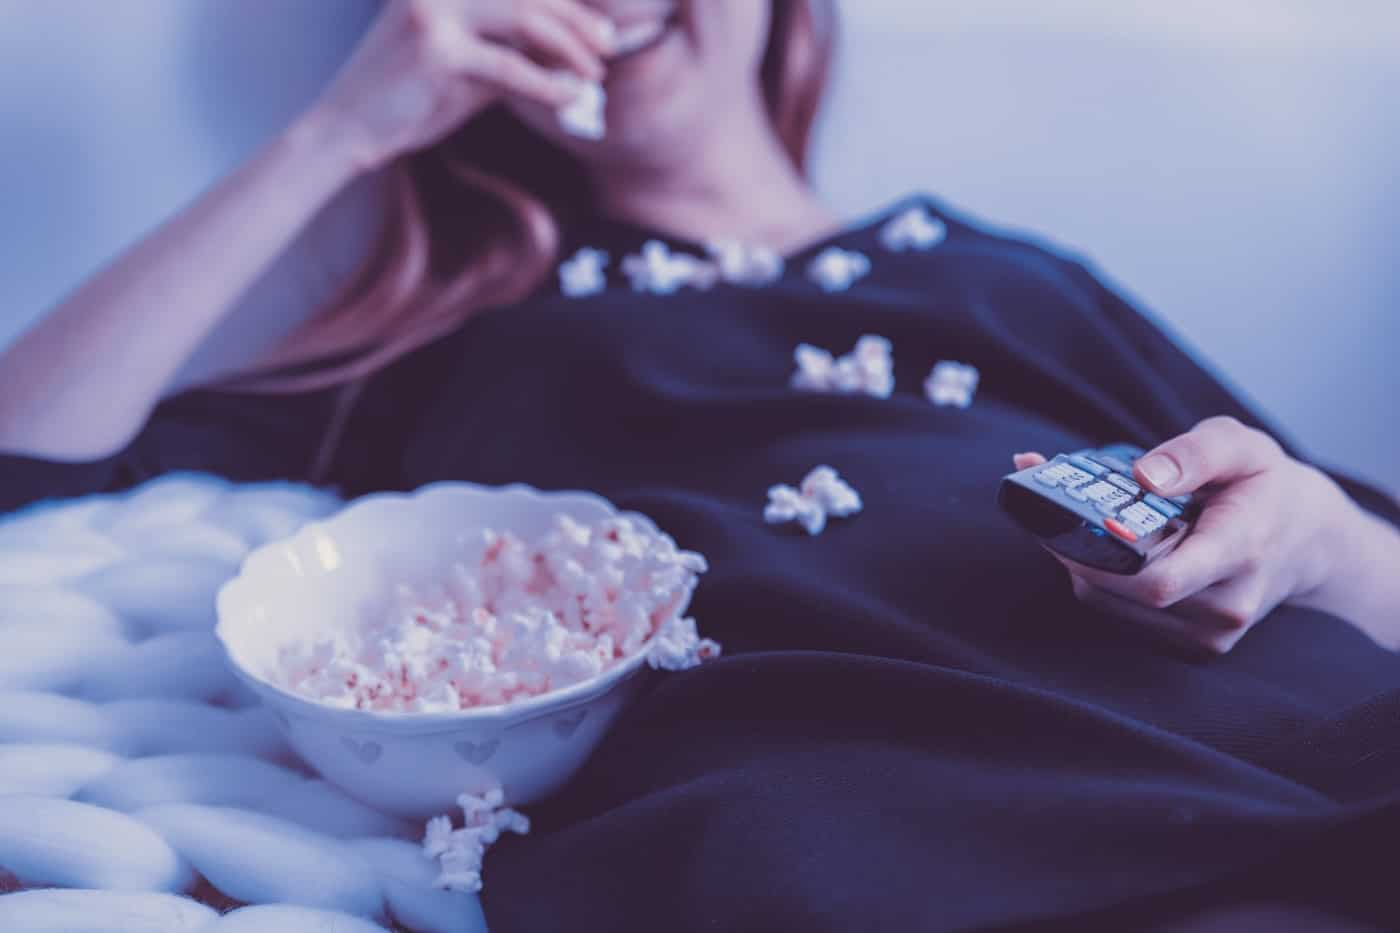 Young woman eating popcorn in bed - Making fat